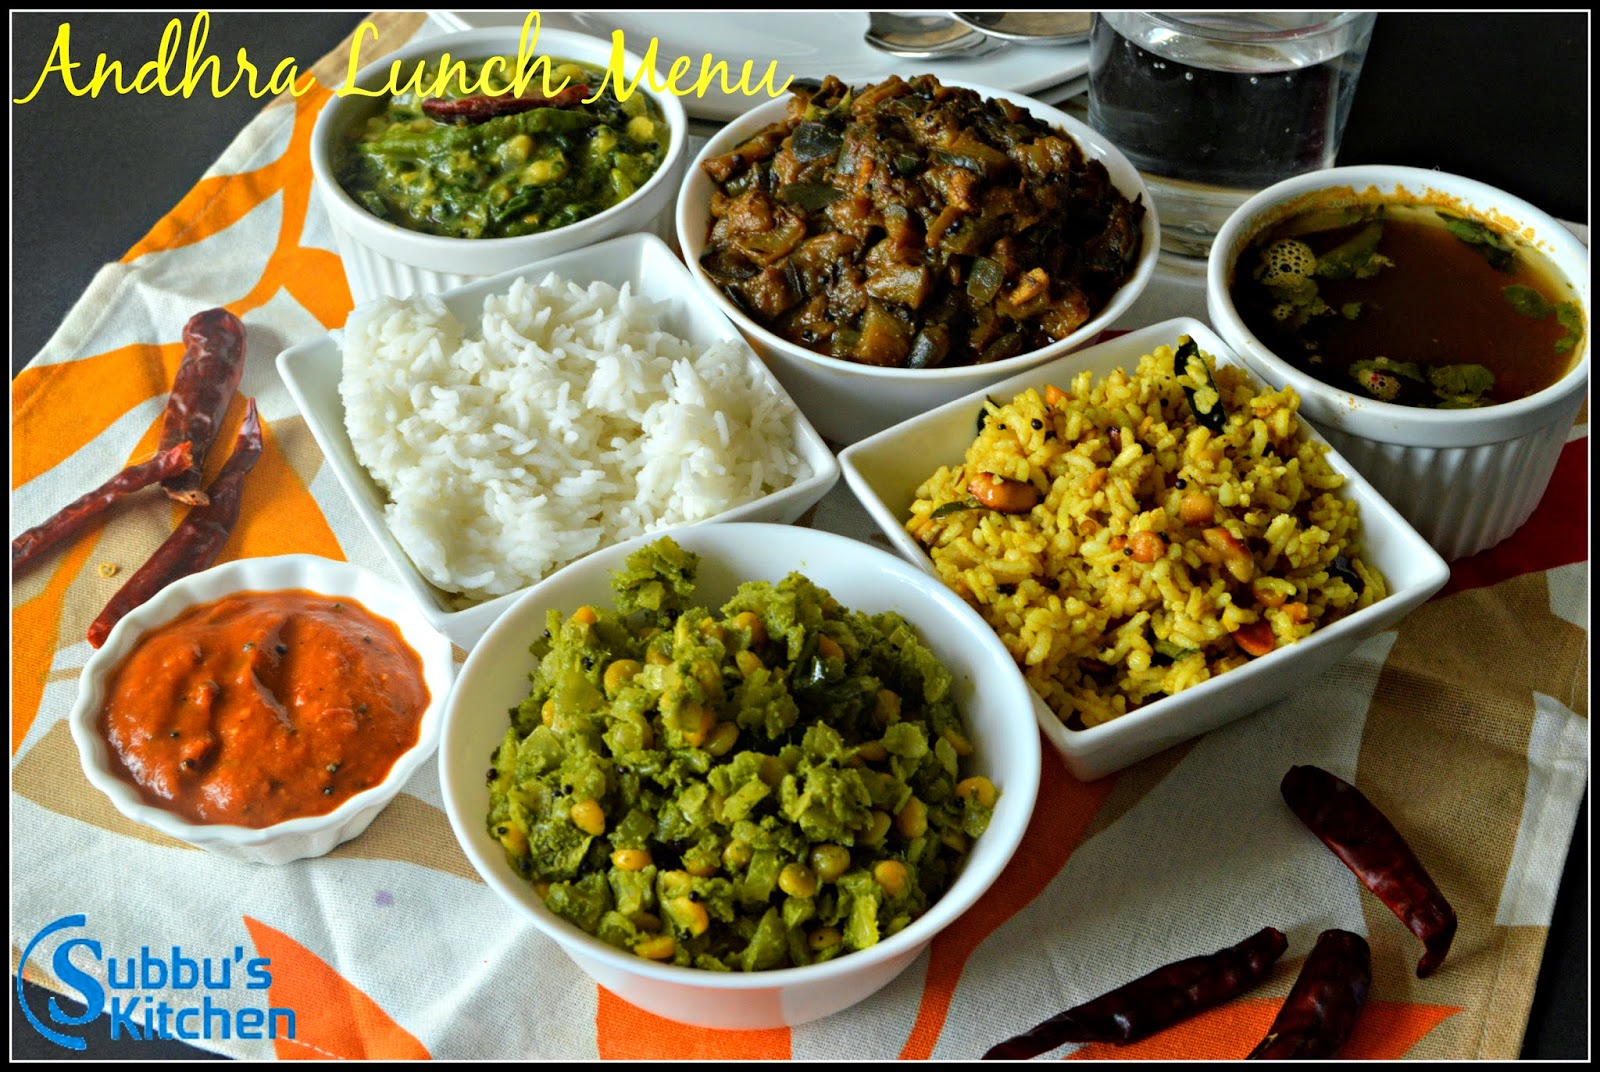 South indian lunch menu 7 andhra lunch menu subbus kitchen south indian lunch menu 7 andhra lunch menu forumfinder